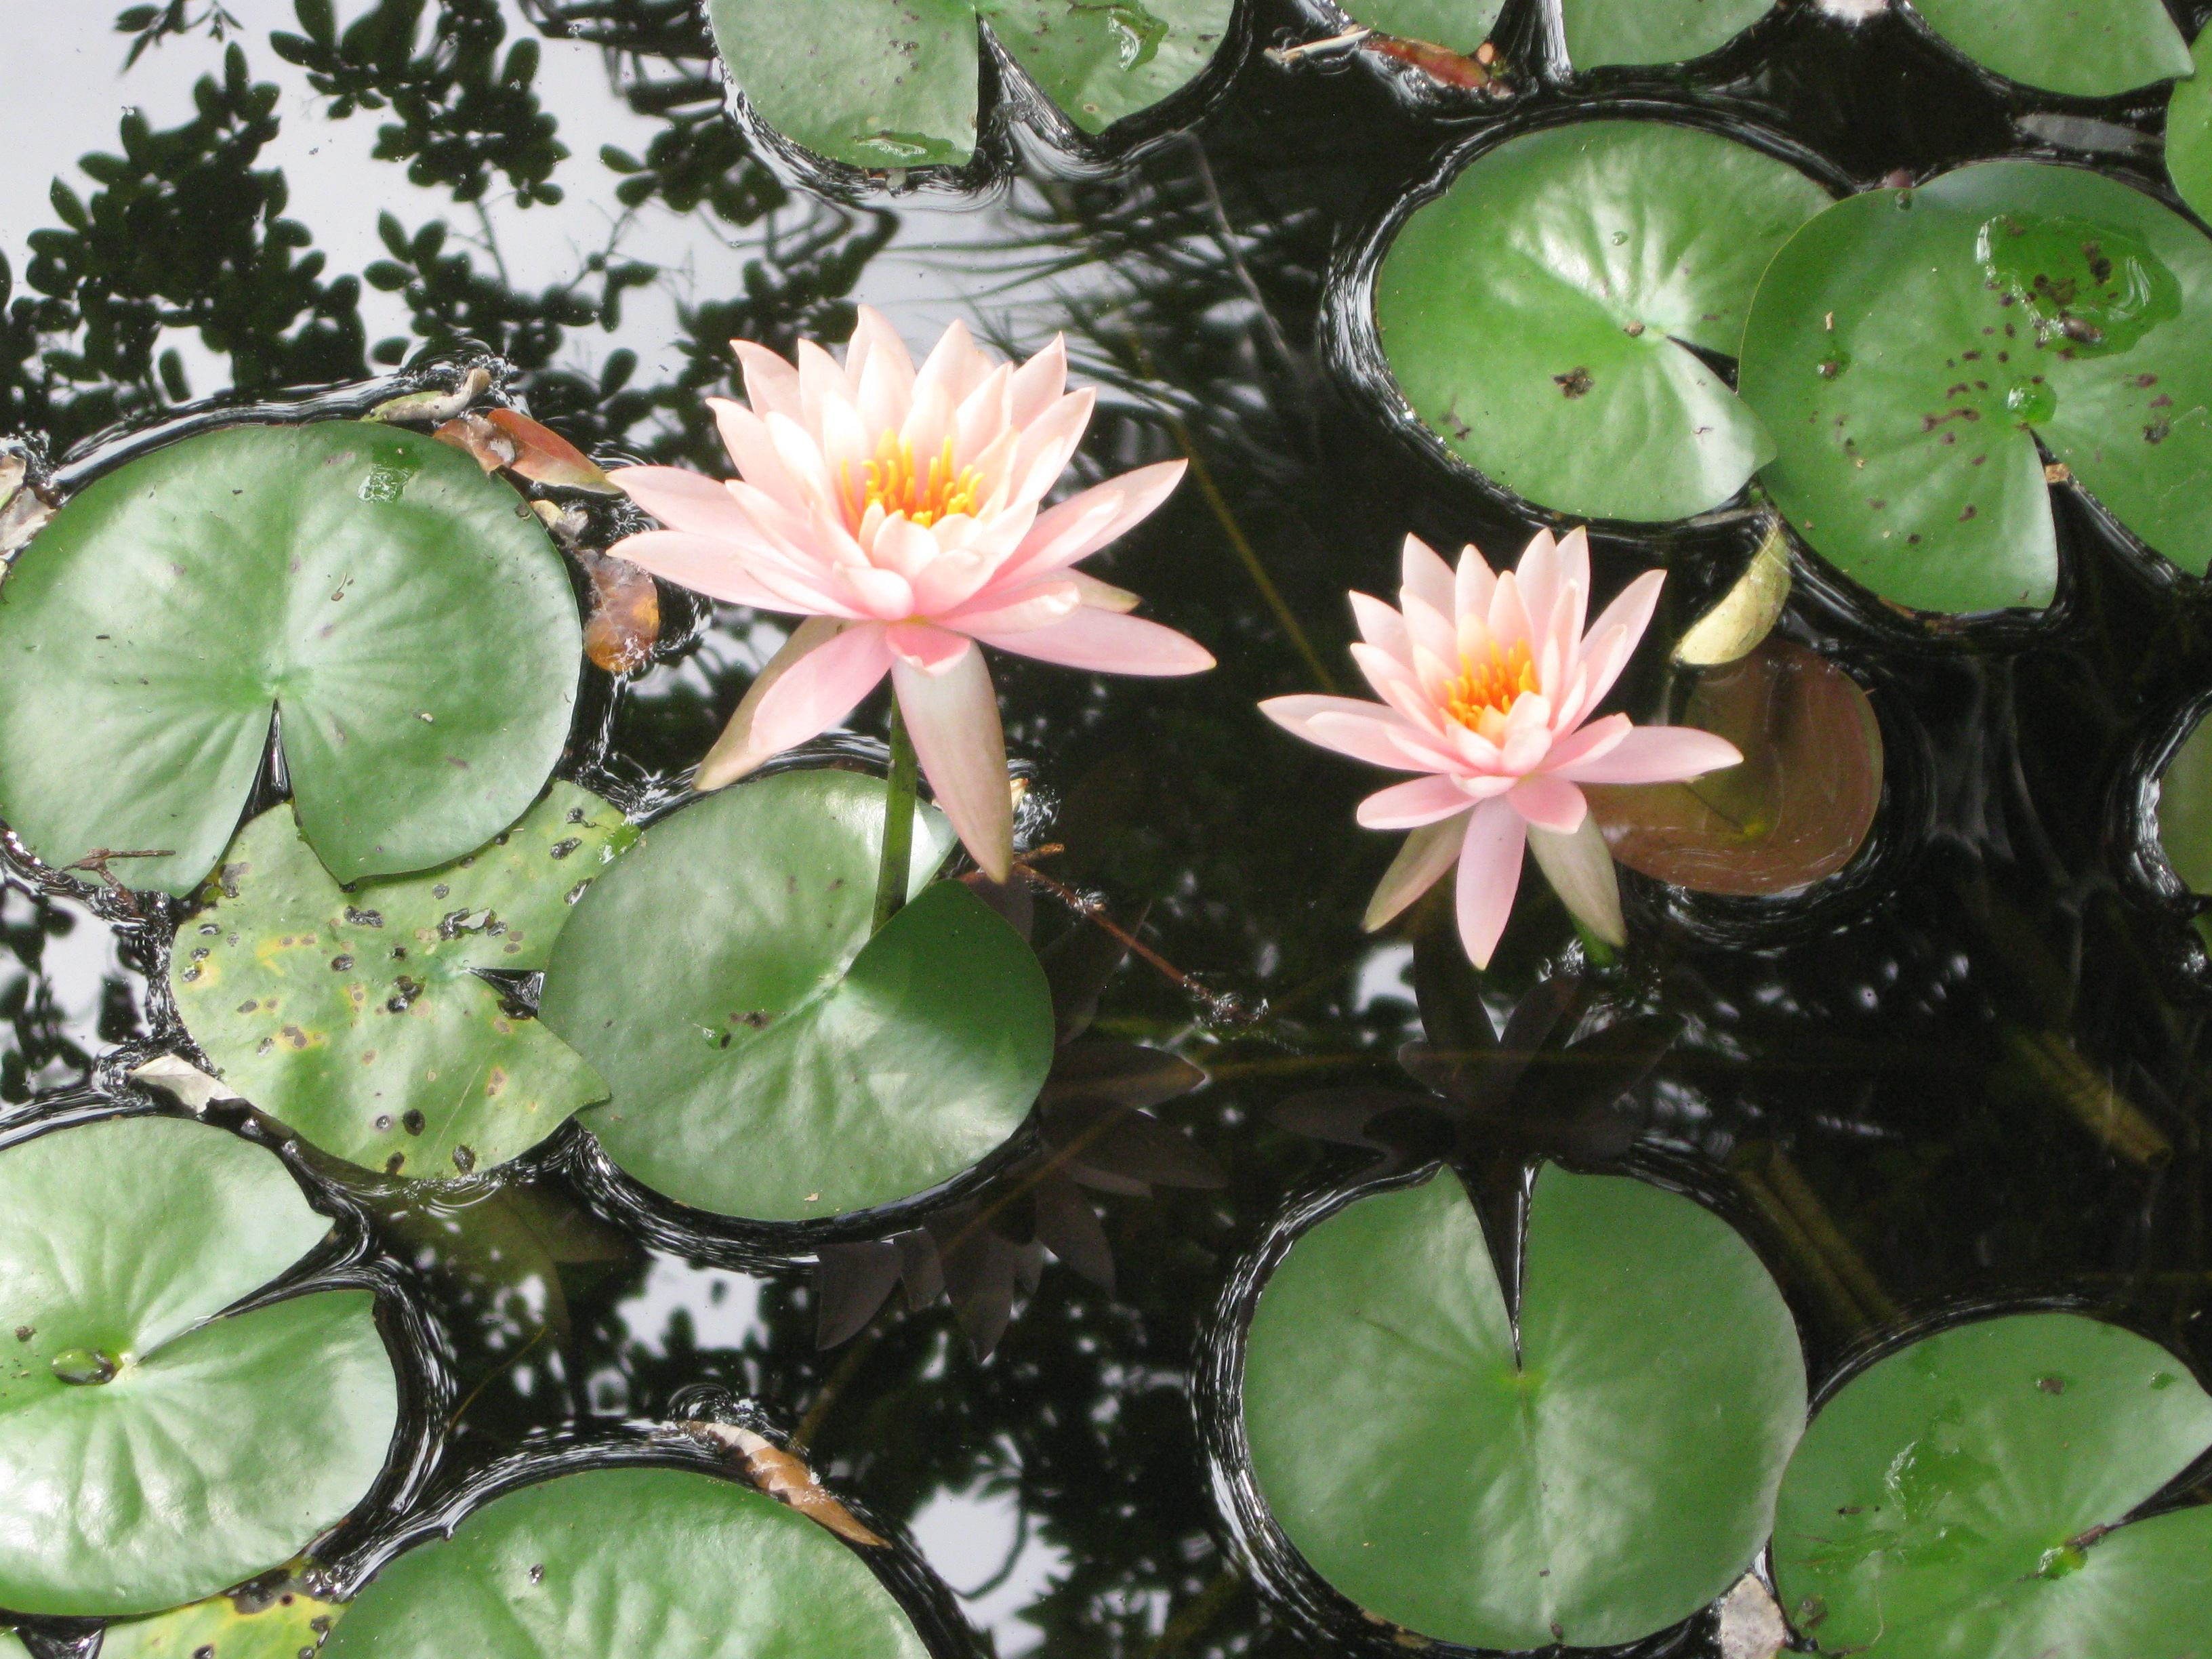 Restful pond with lily pads and coral flowers